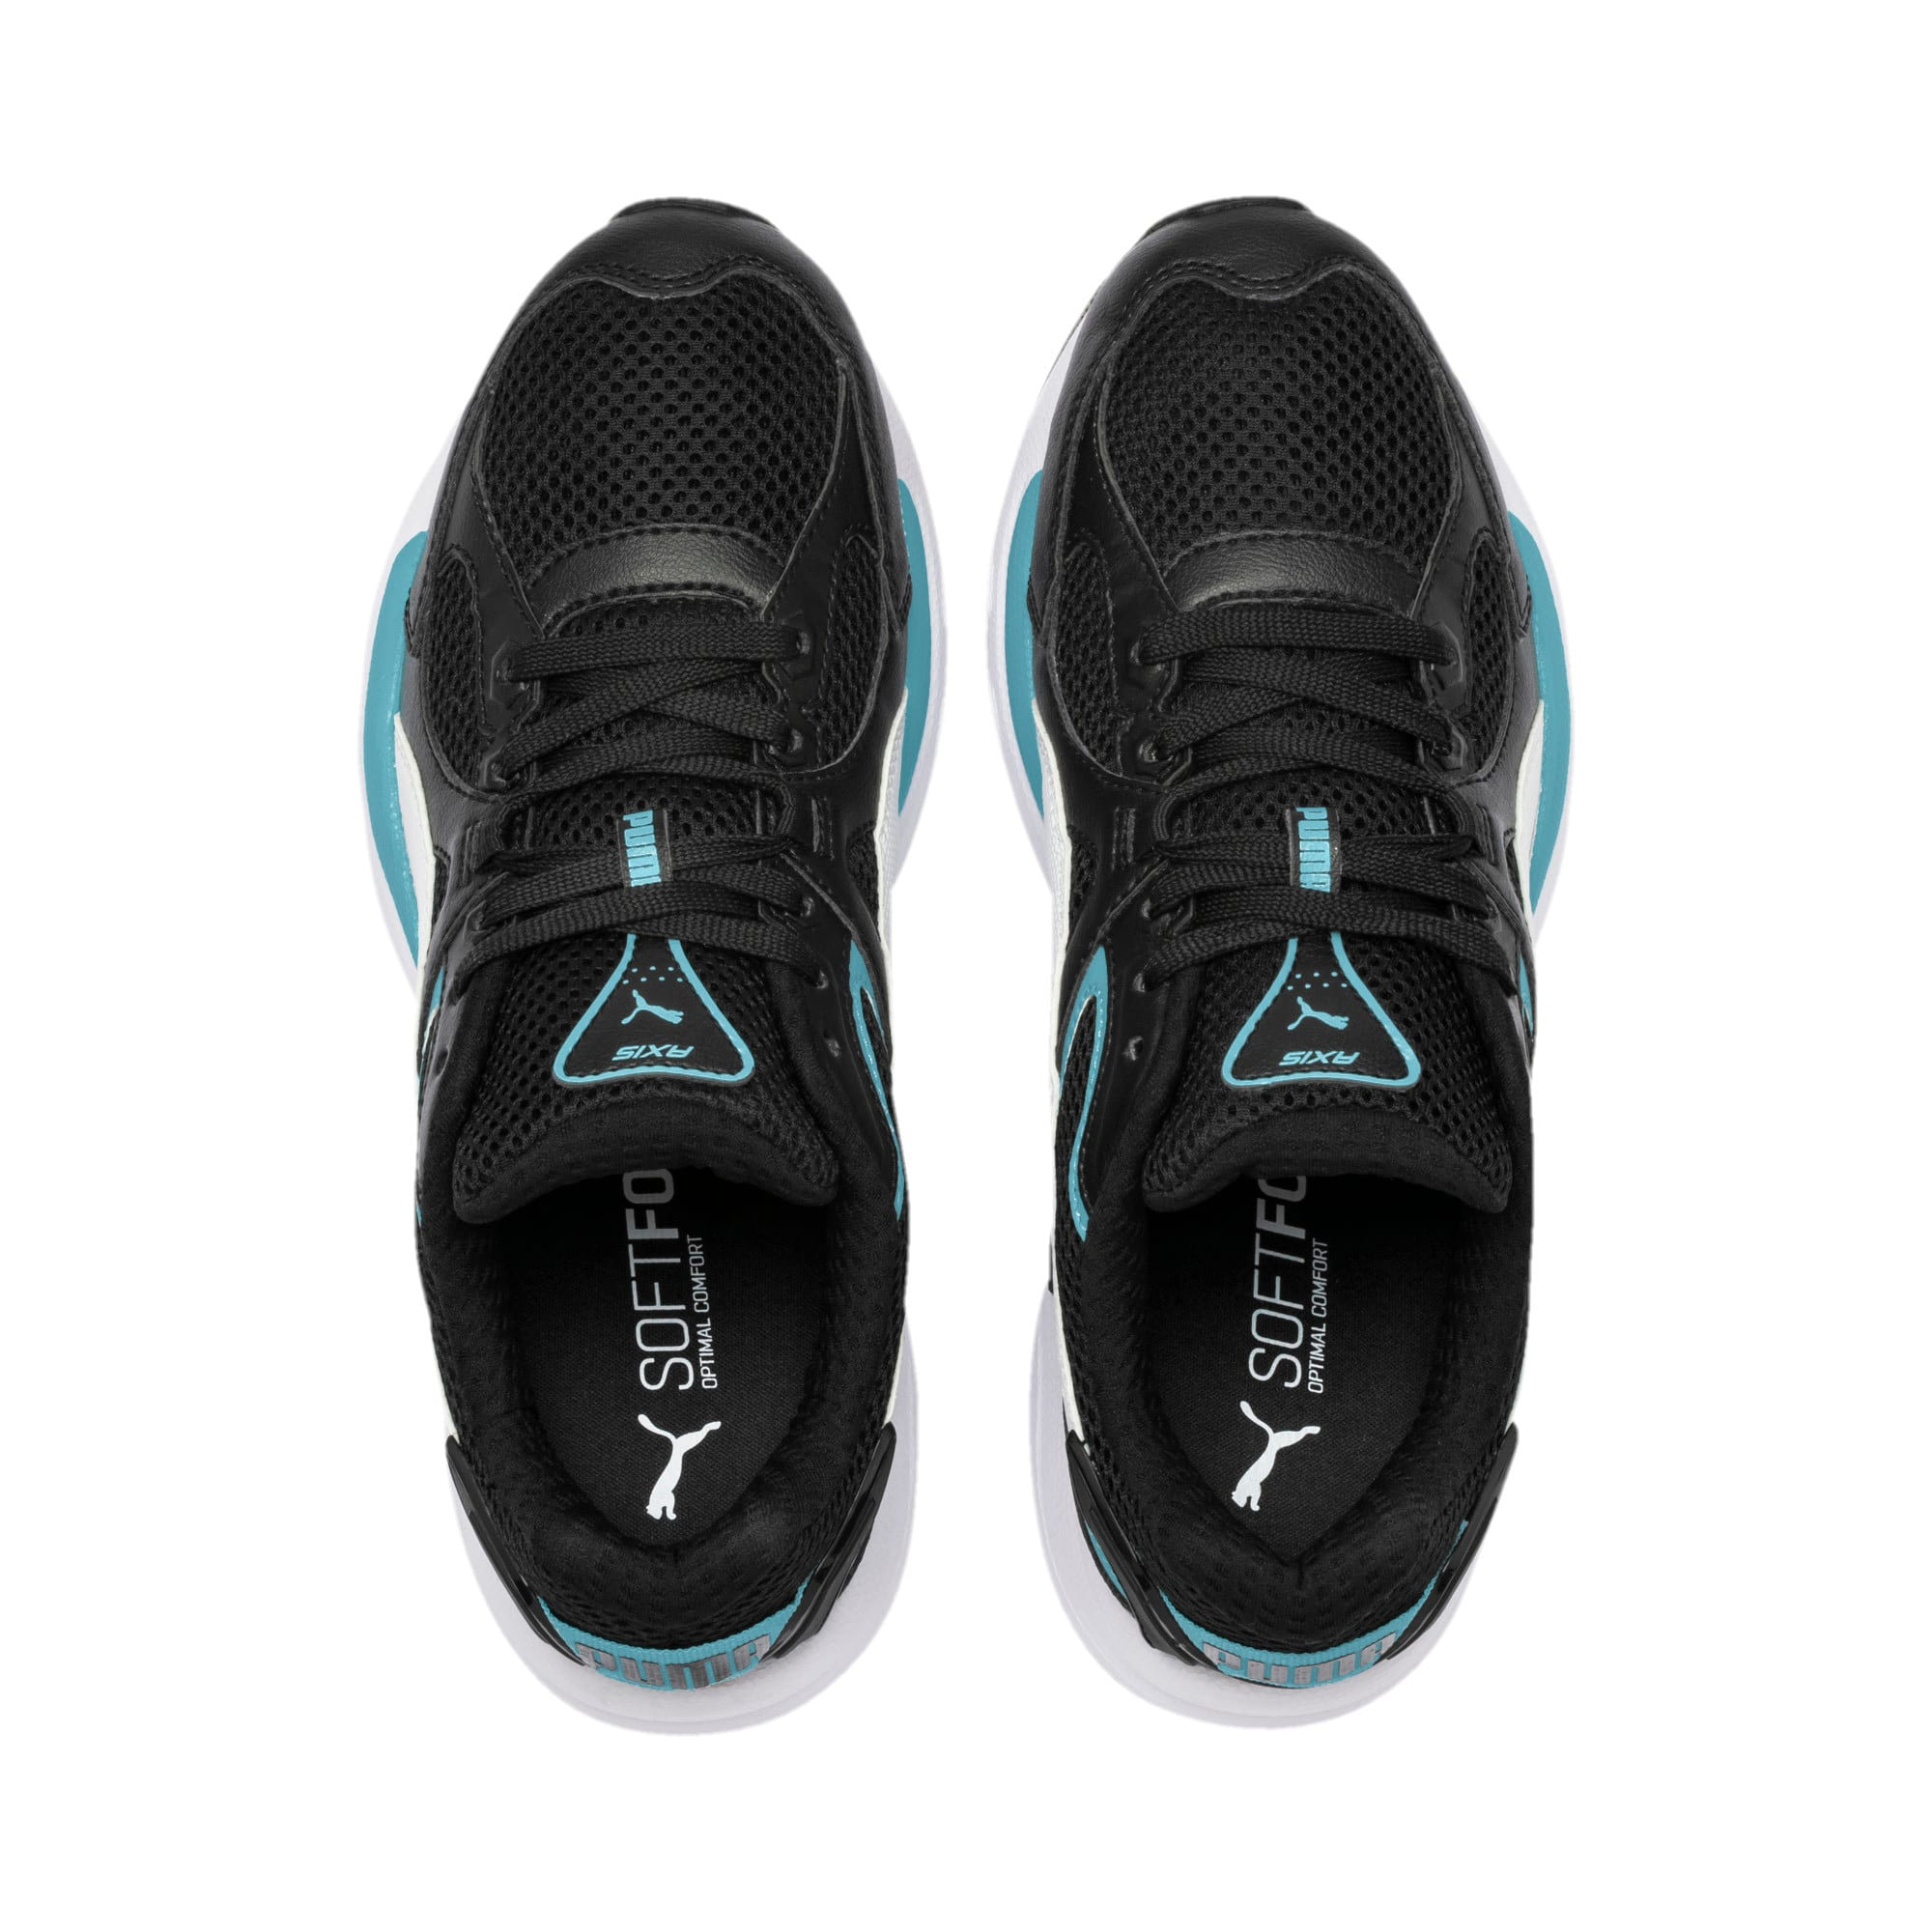 Thumbnail 8 of Axis Plus 90s Trainers, Puma Black-White-Milky Blue, medium-IND